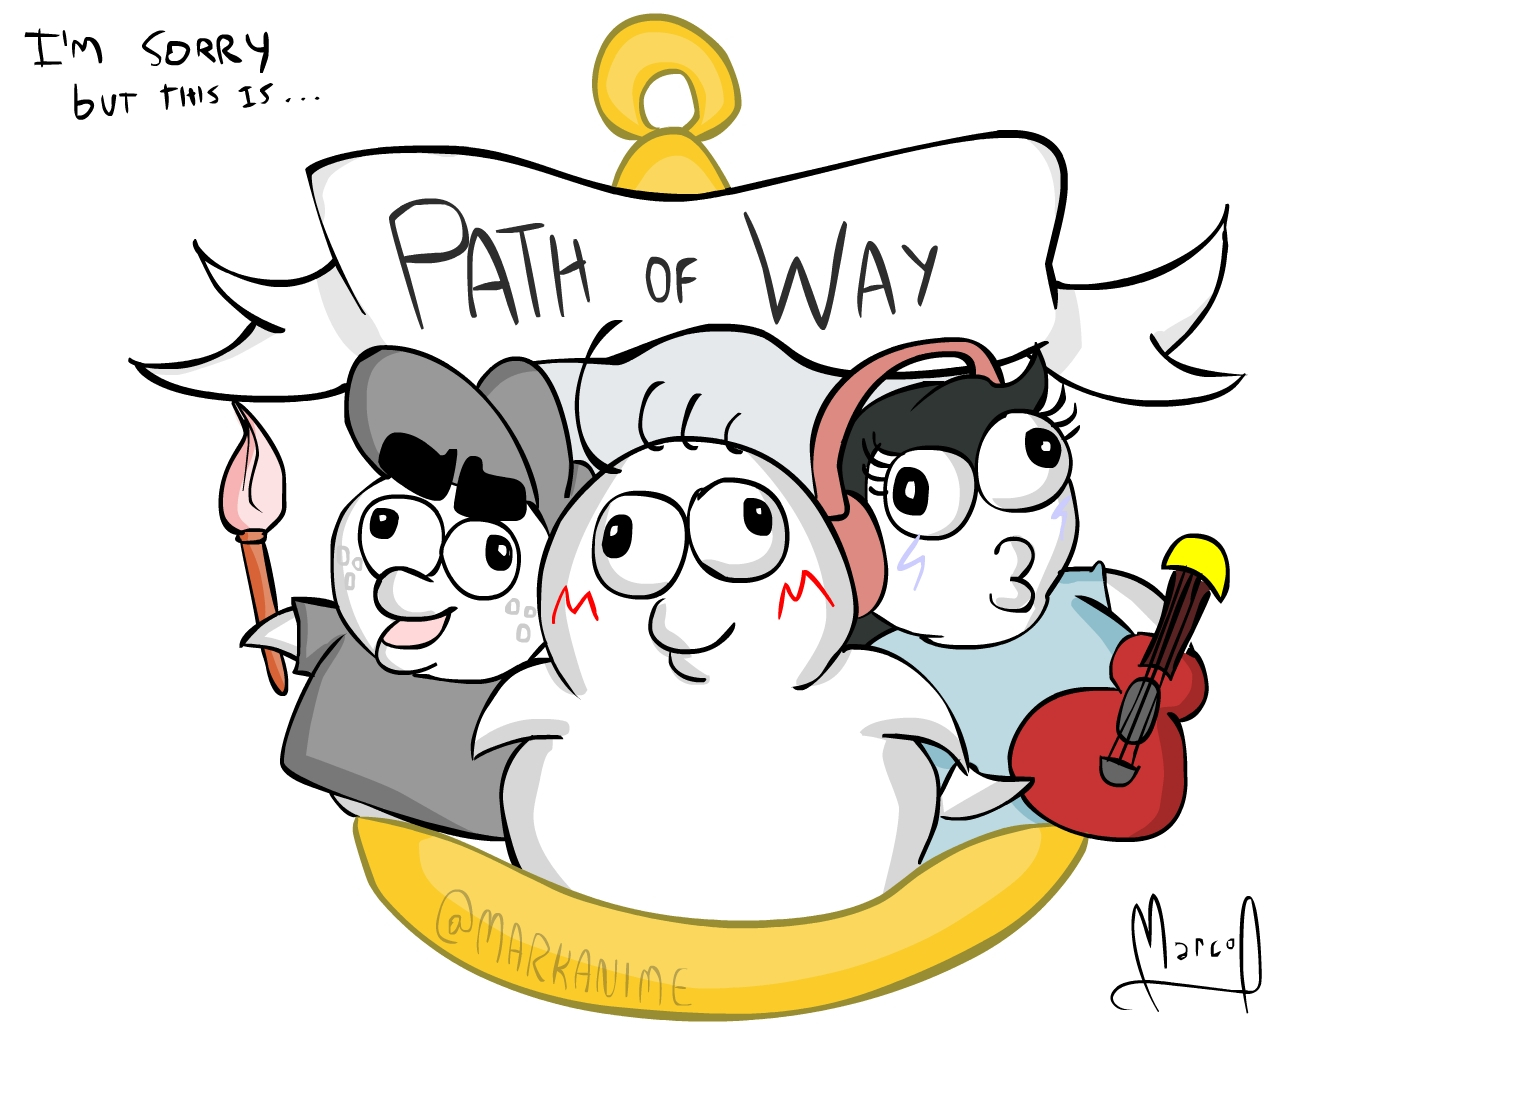 PATH OF WAY